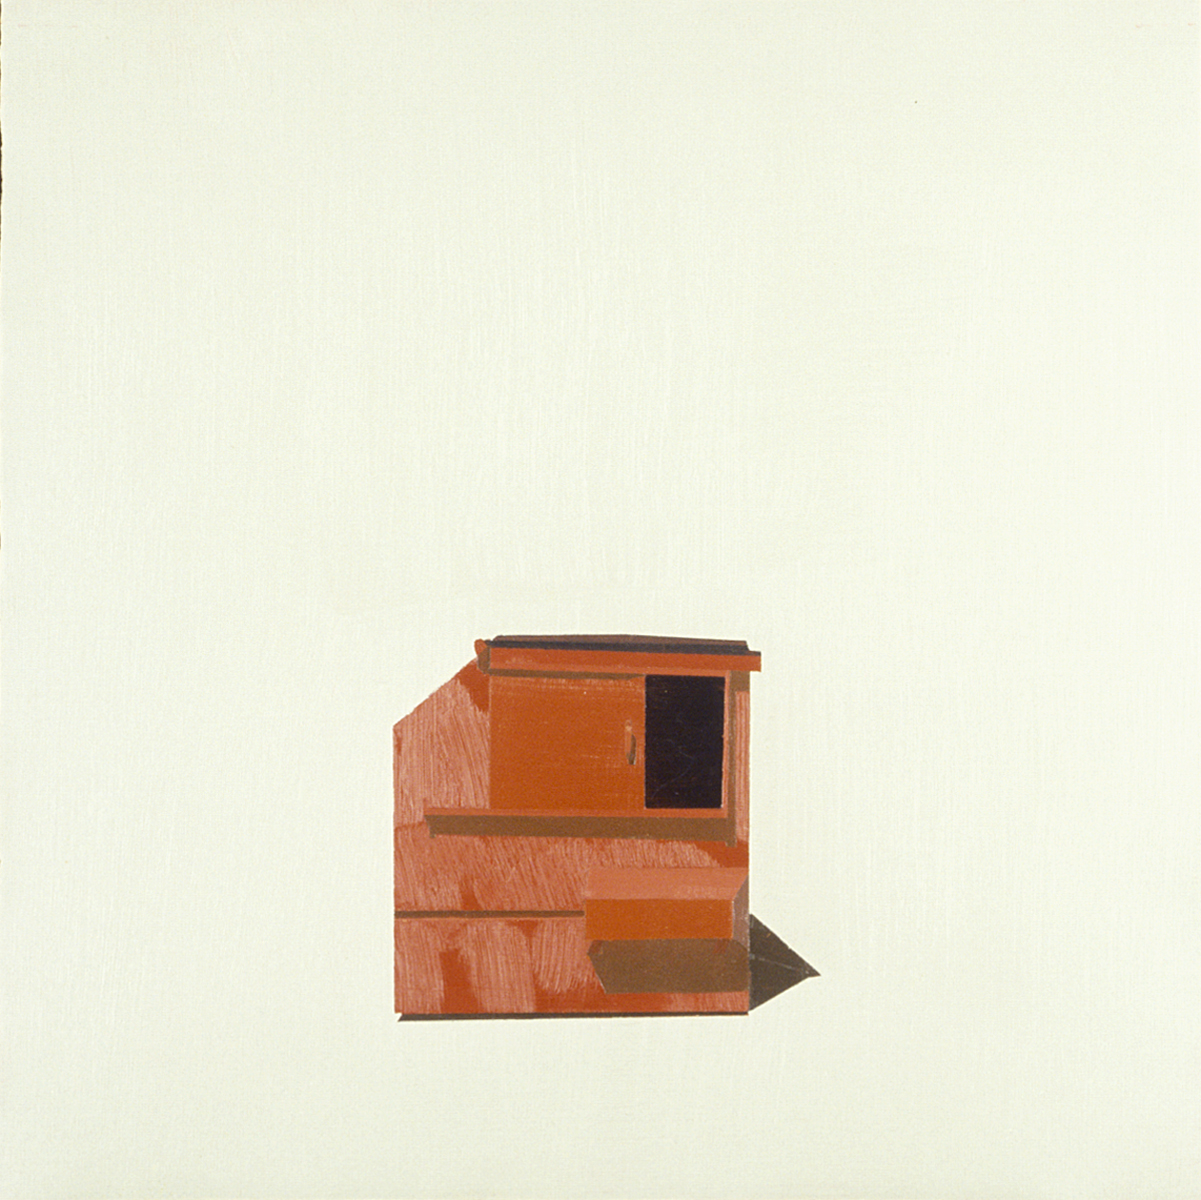 CANYON REDROCK DUMPSTER IN SUBTLE TAUPE   oil on paper "